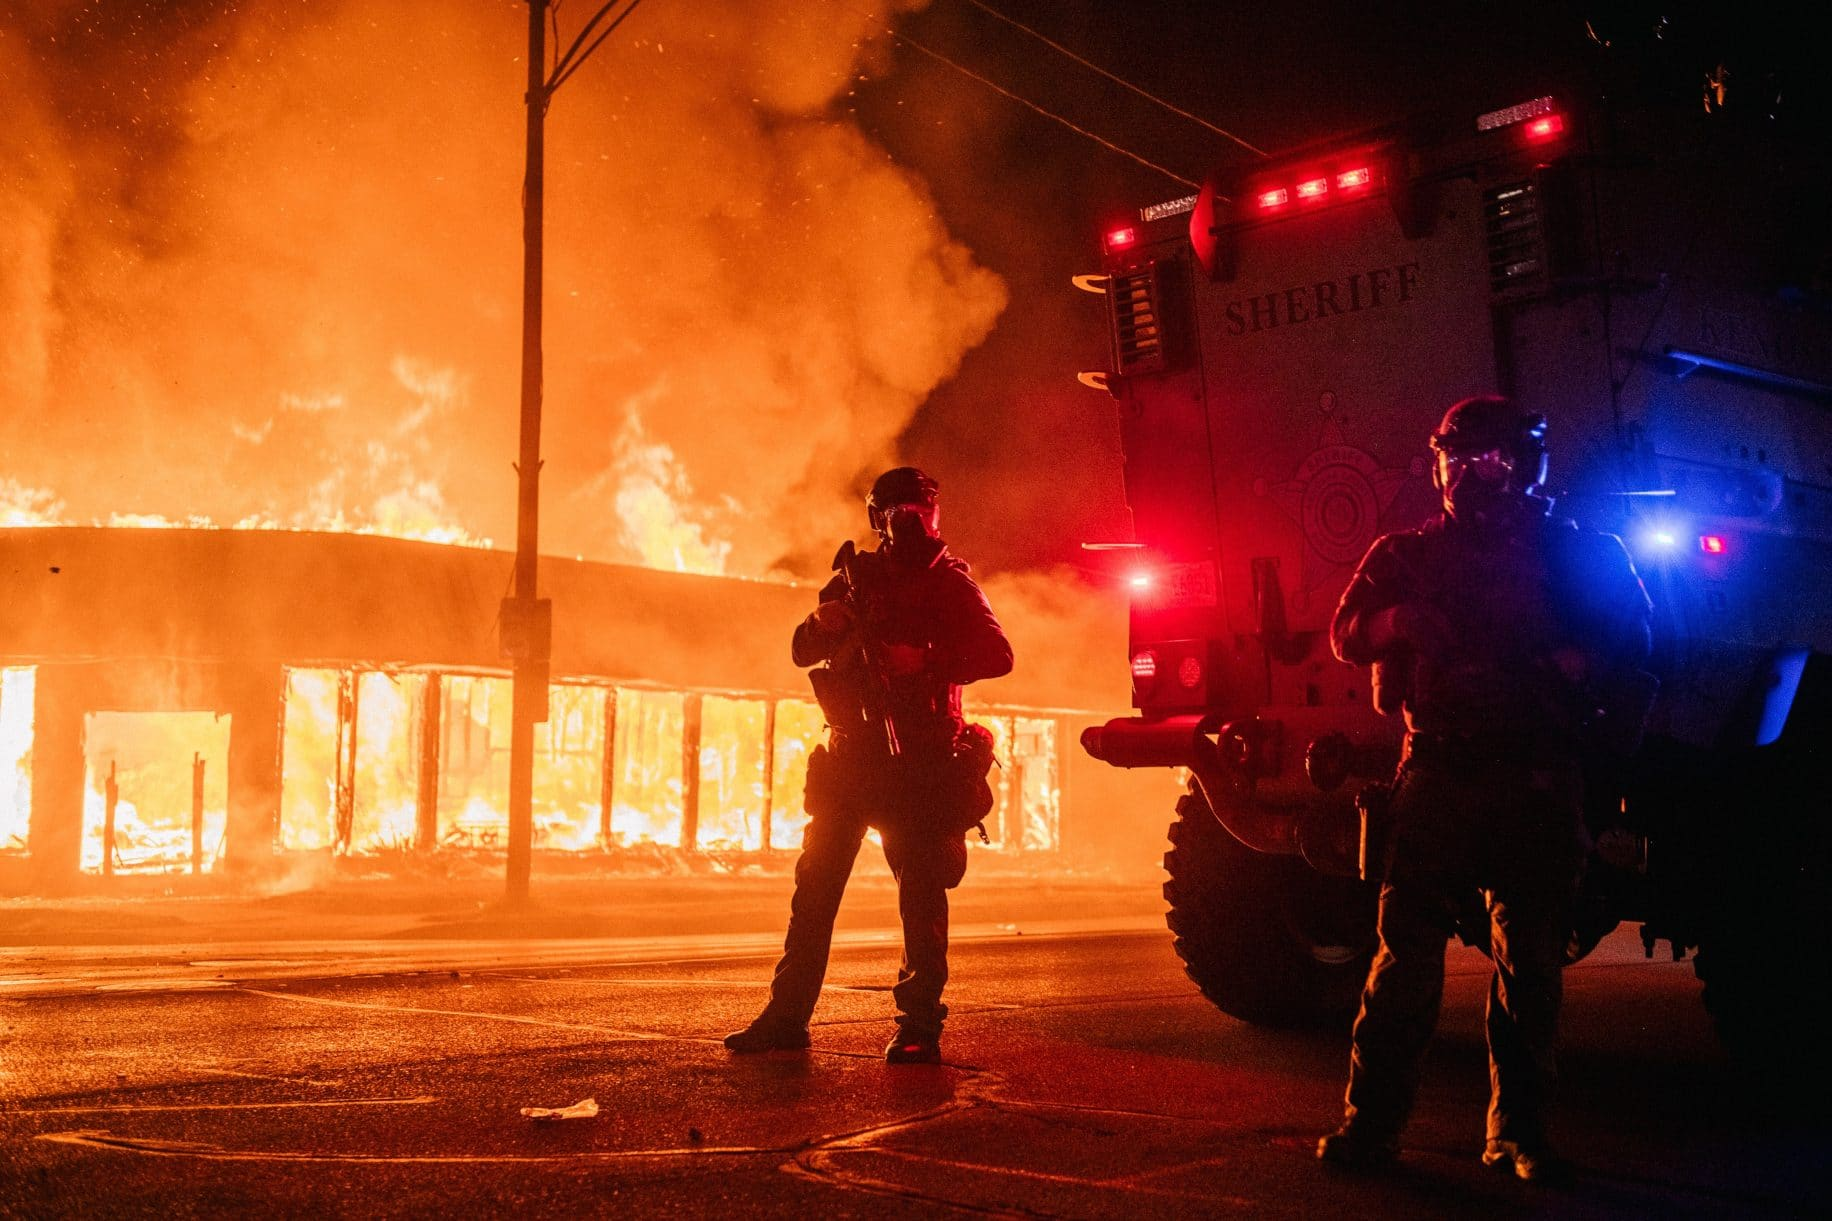 Juvenile arrested for WI riot murders; Trump sending in Nat'l Guard and federal agents